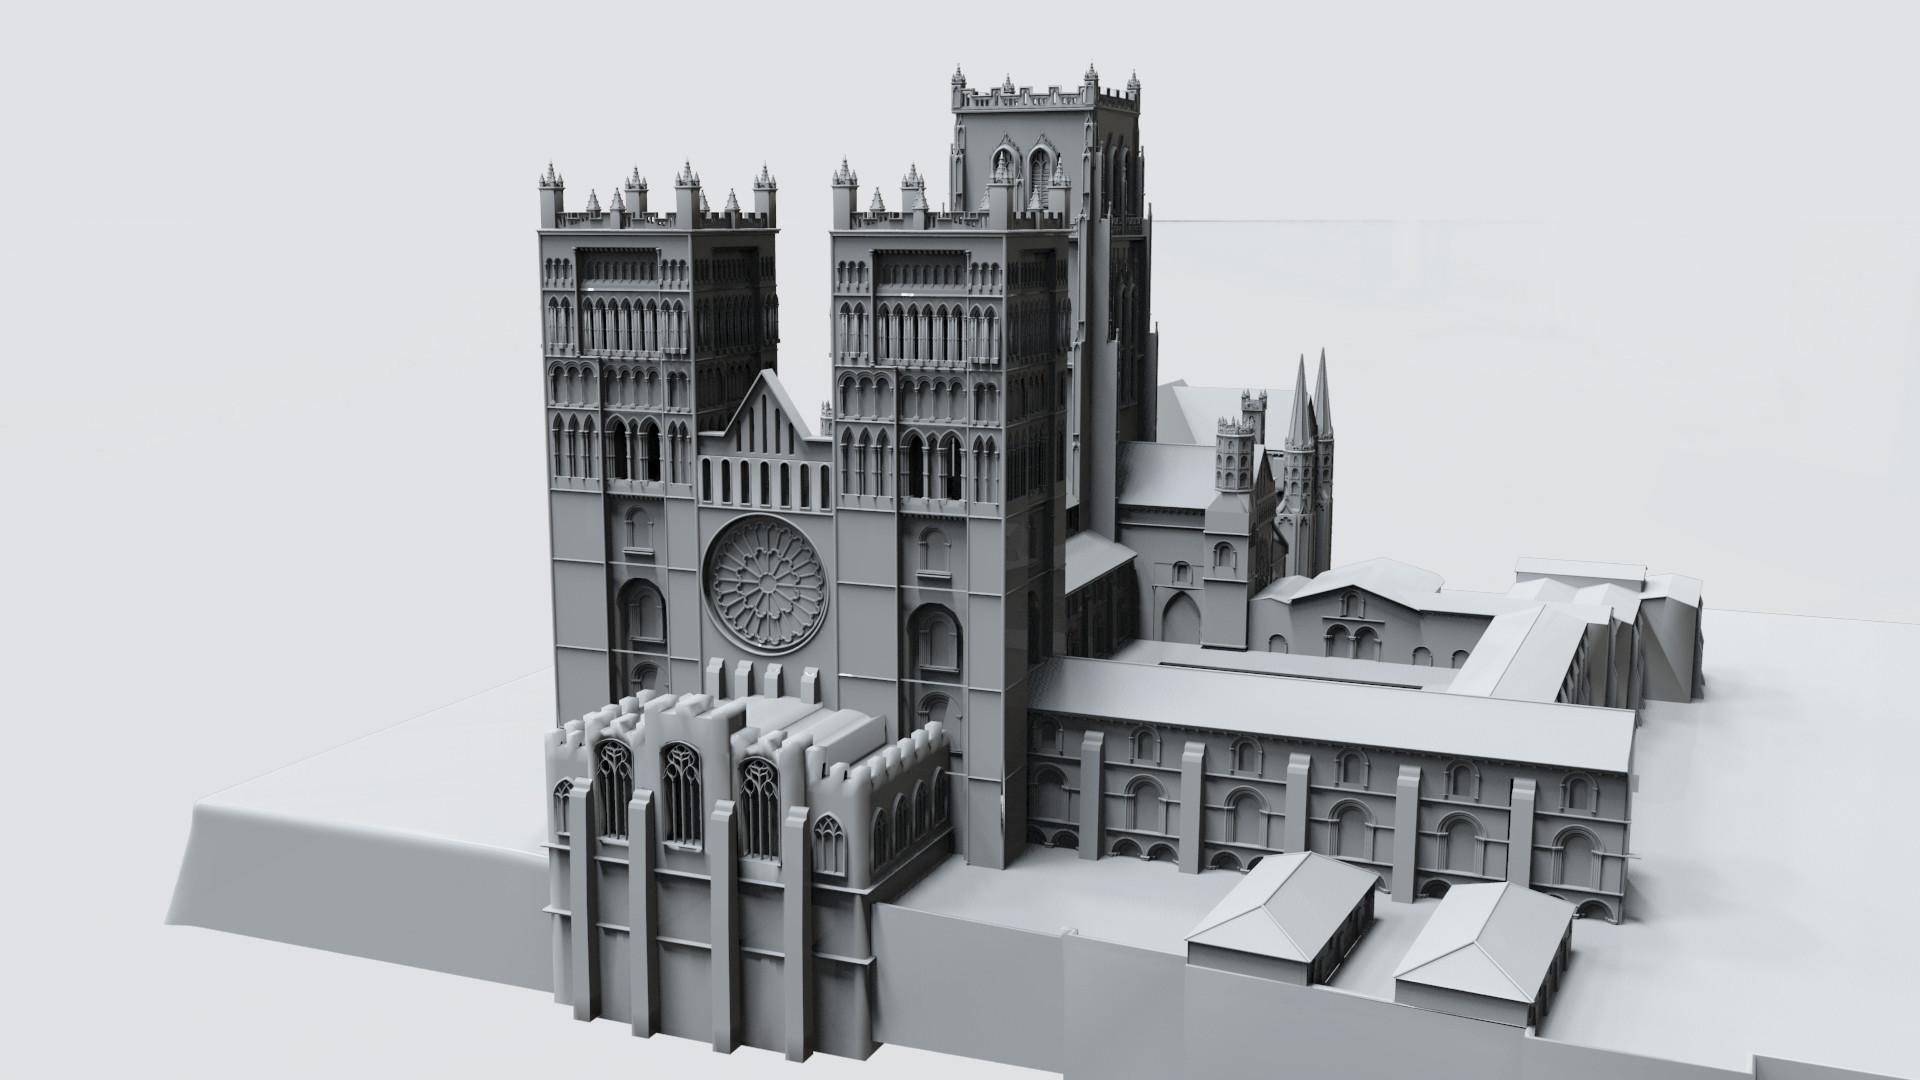 Durham Cathedral Exterior (untextured). Done as part of an FXPHD class I taught